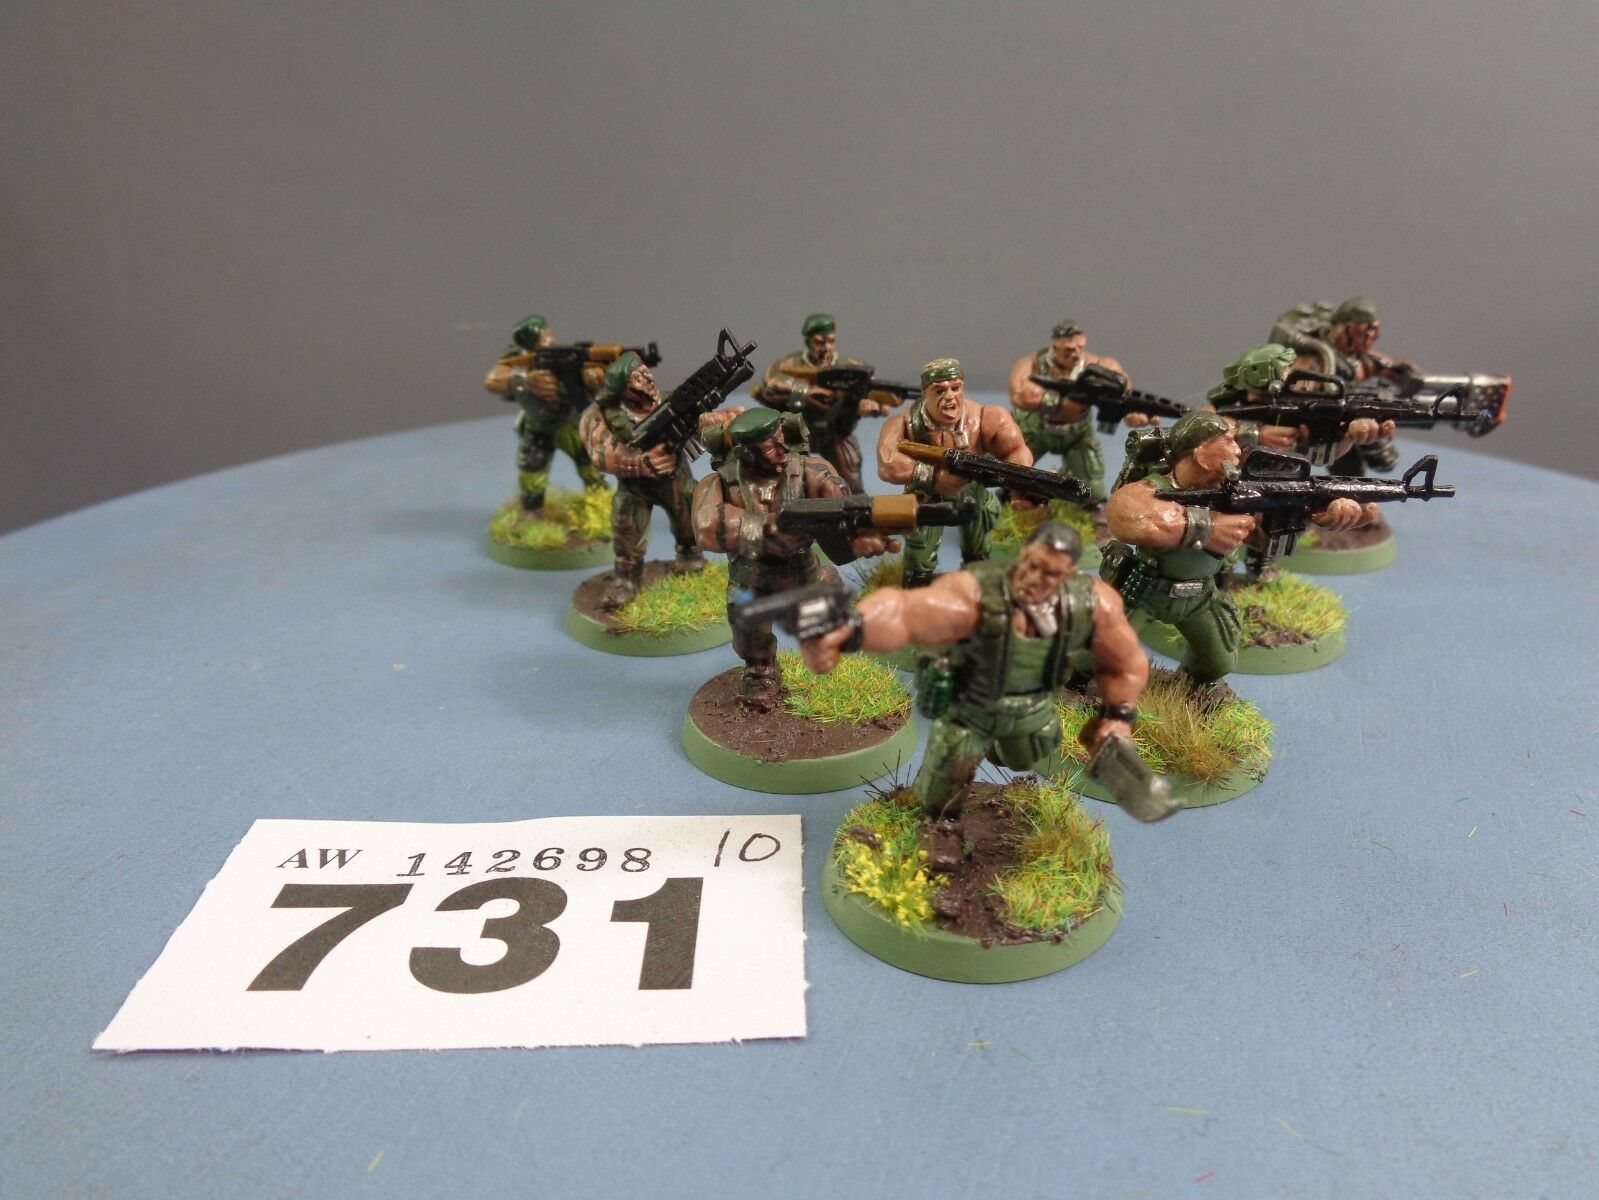 Warhammer Astra Militarum Imperial Guard Catachan Cadian Vet Guardsmen Squad 731